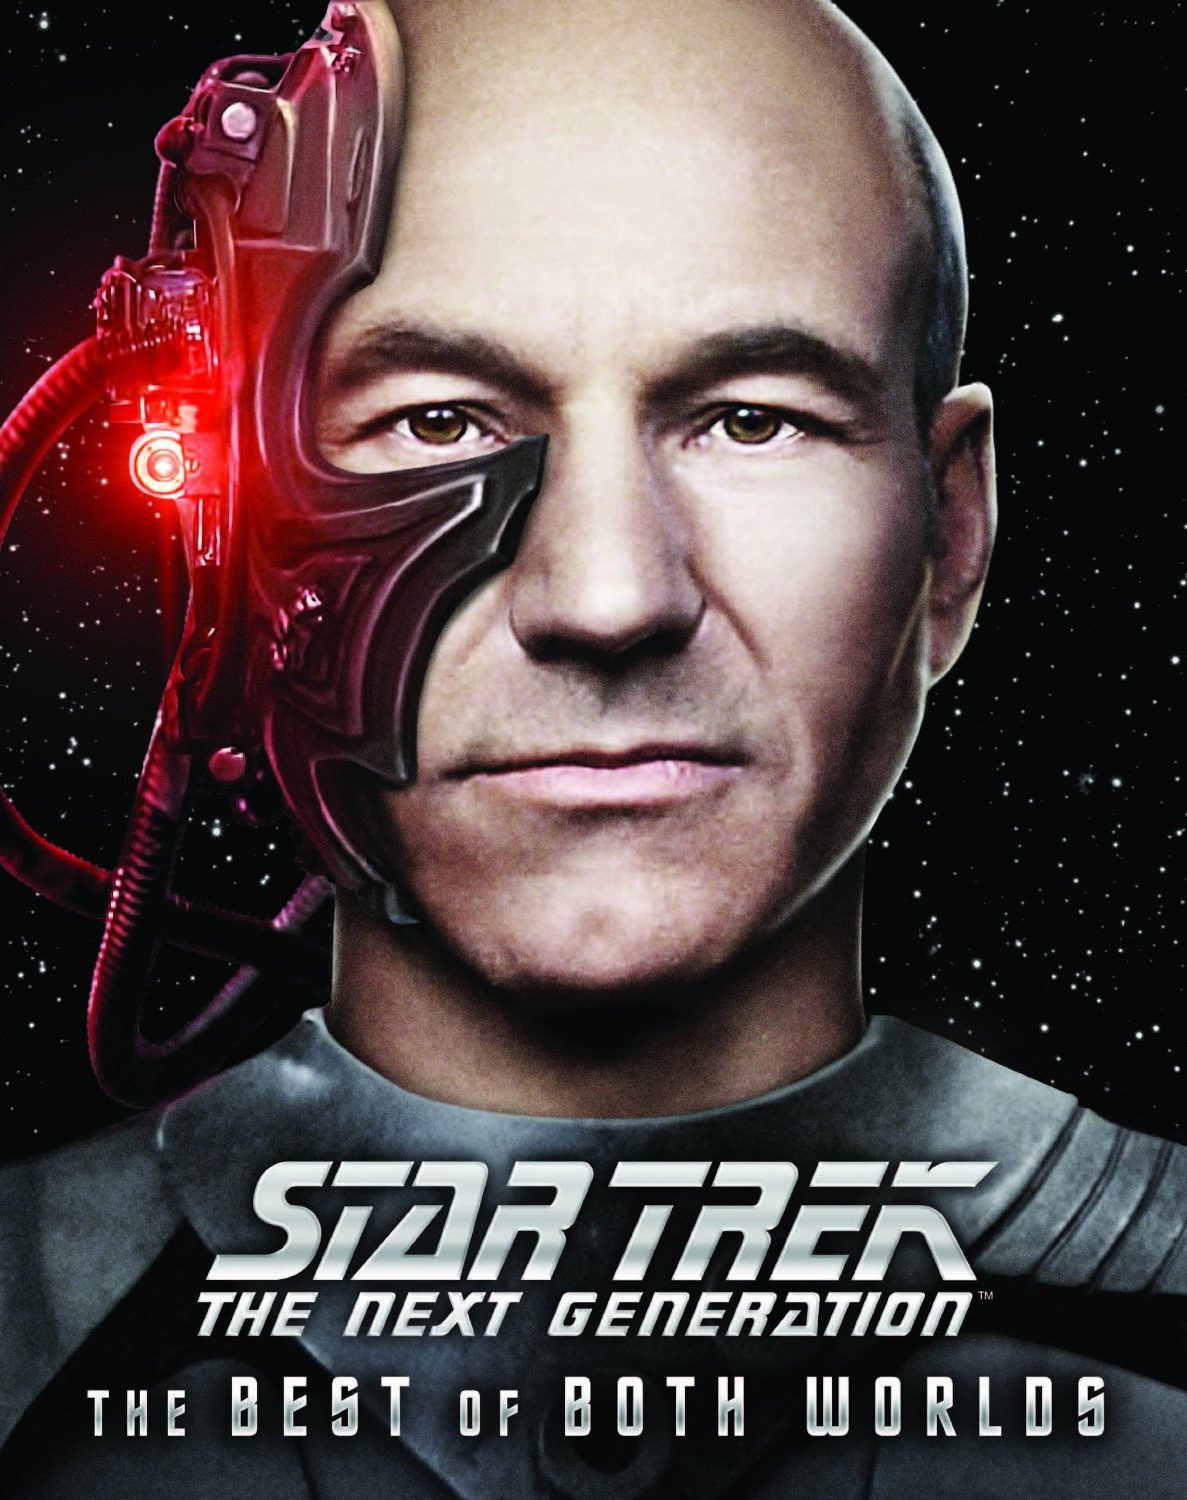 Star Trek The Next Generation The Best of Both Worlds bluray - Star Trek TNG